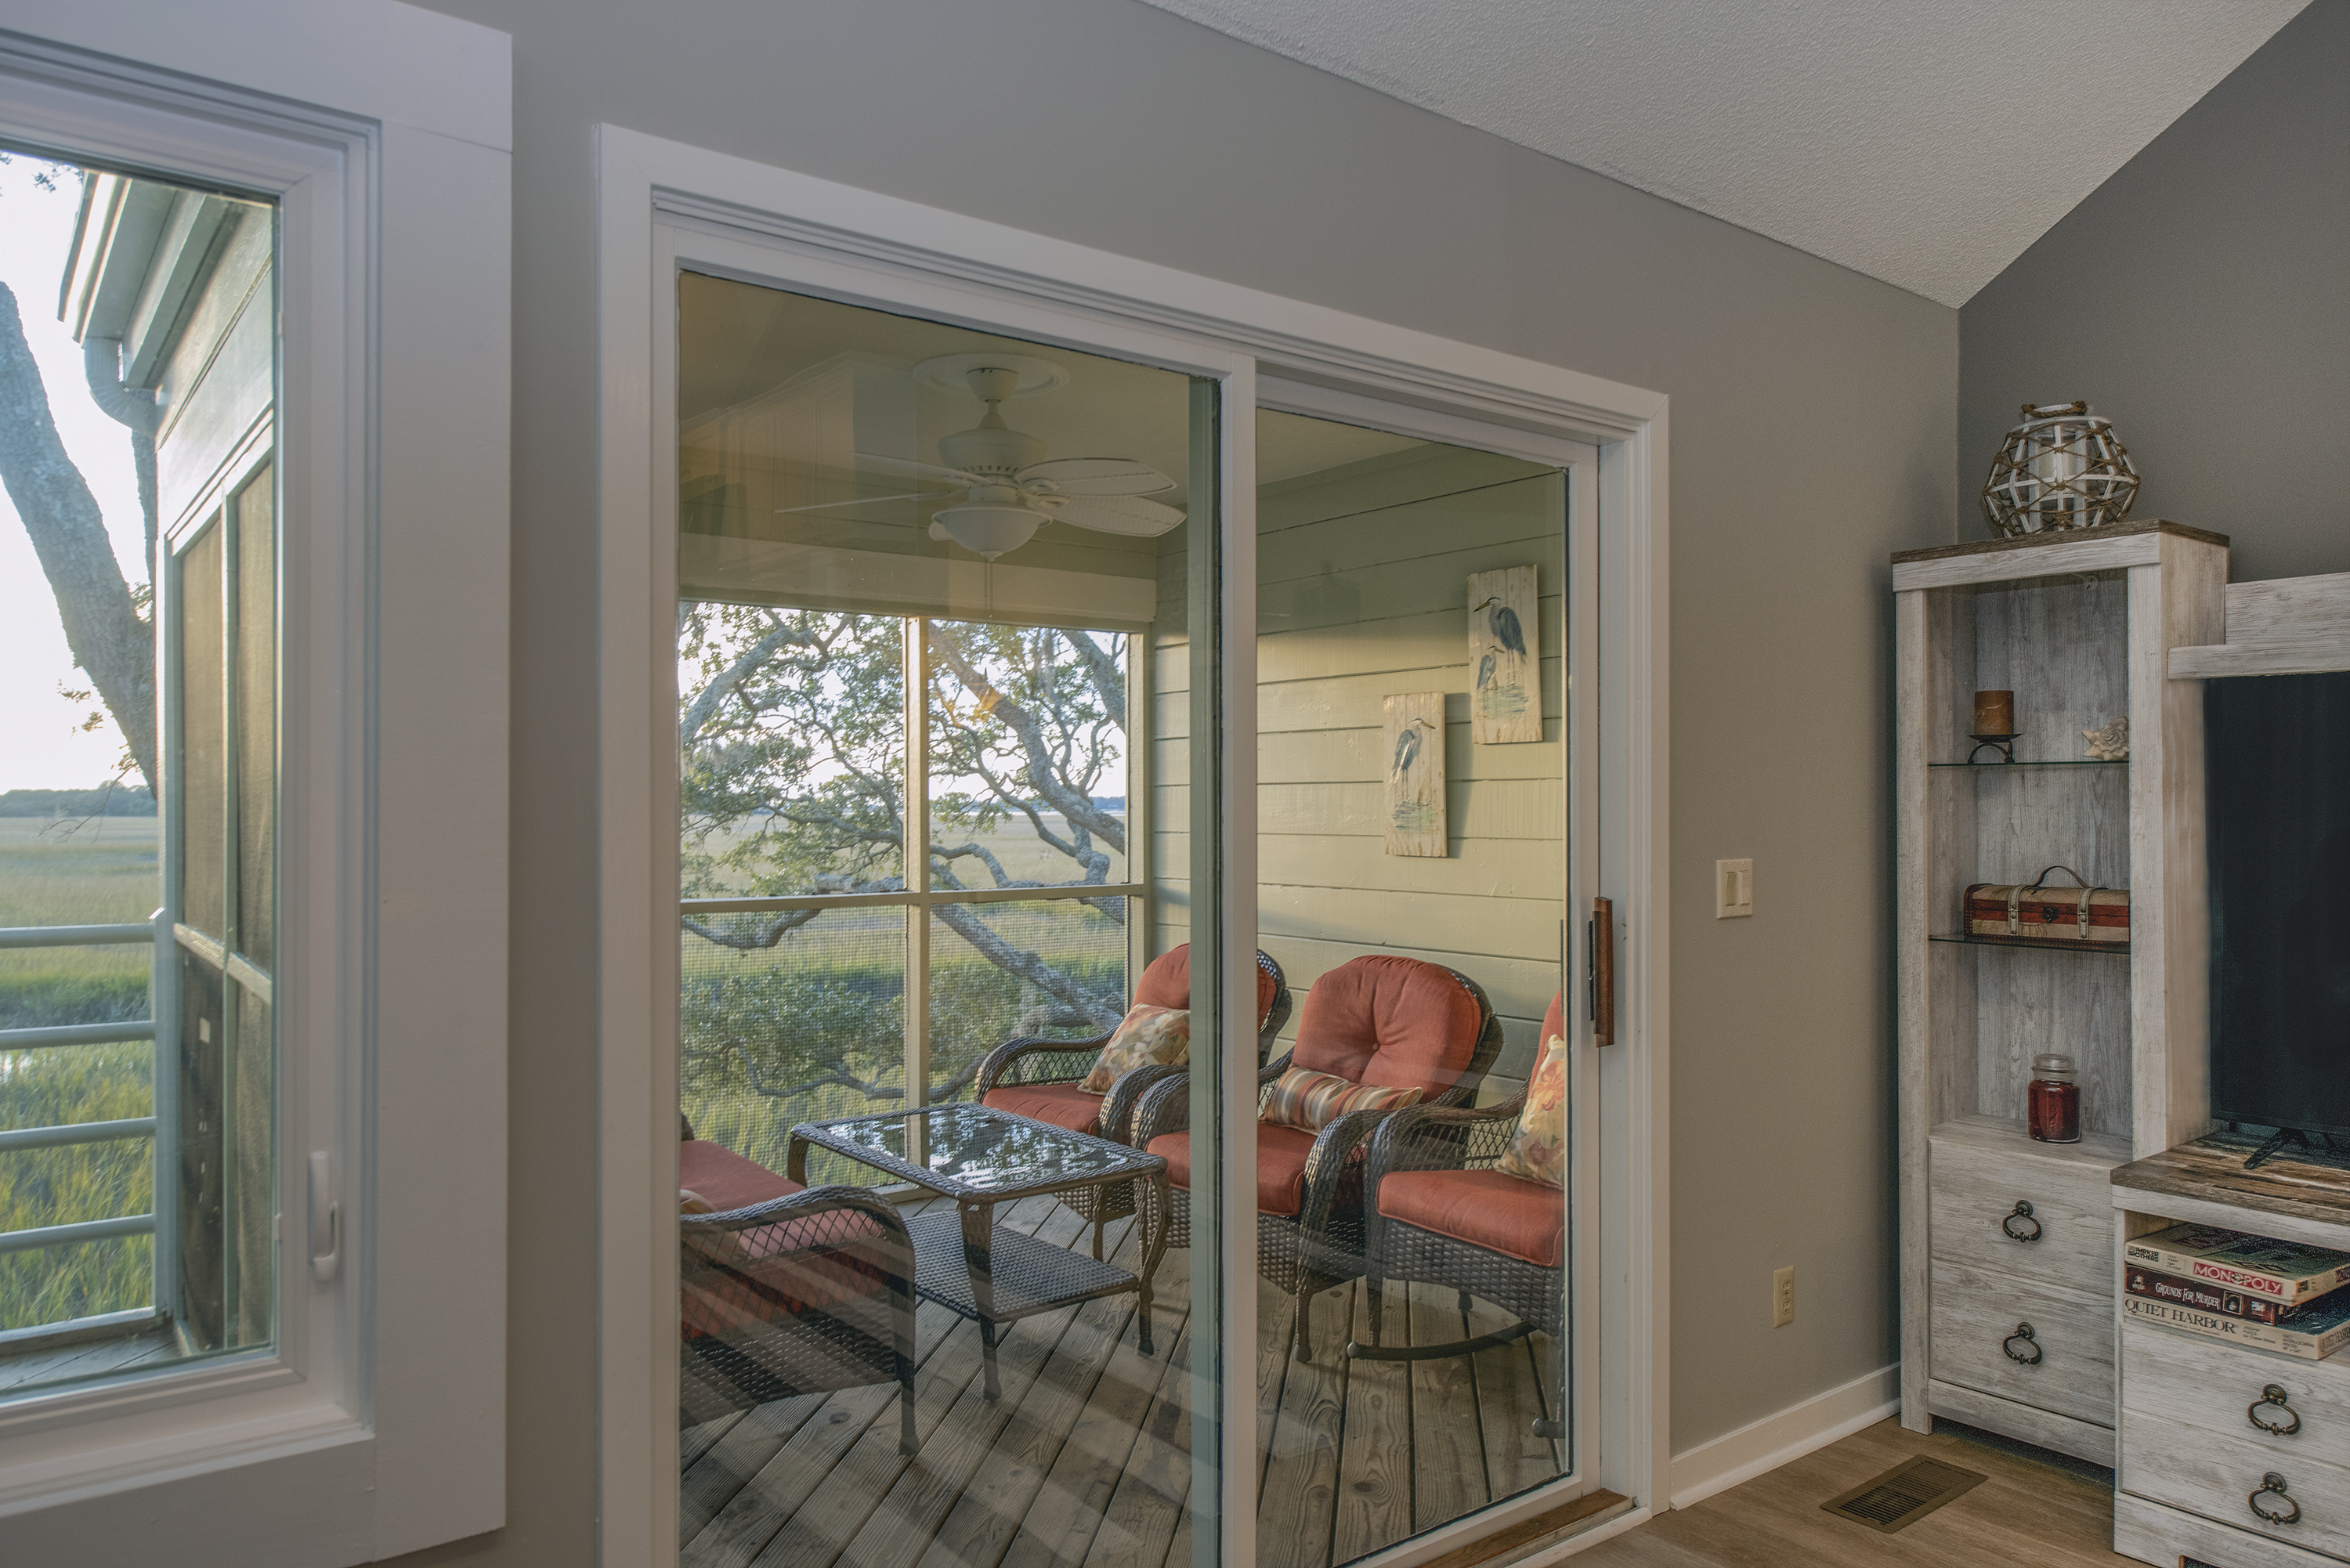 Sliding doors lead to the outside porch.